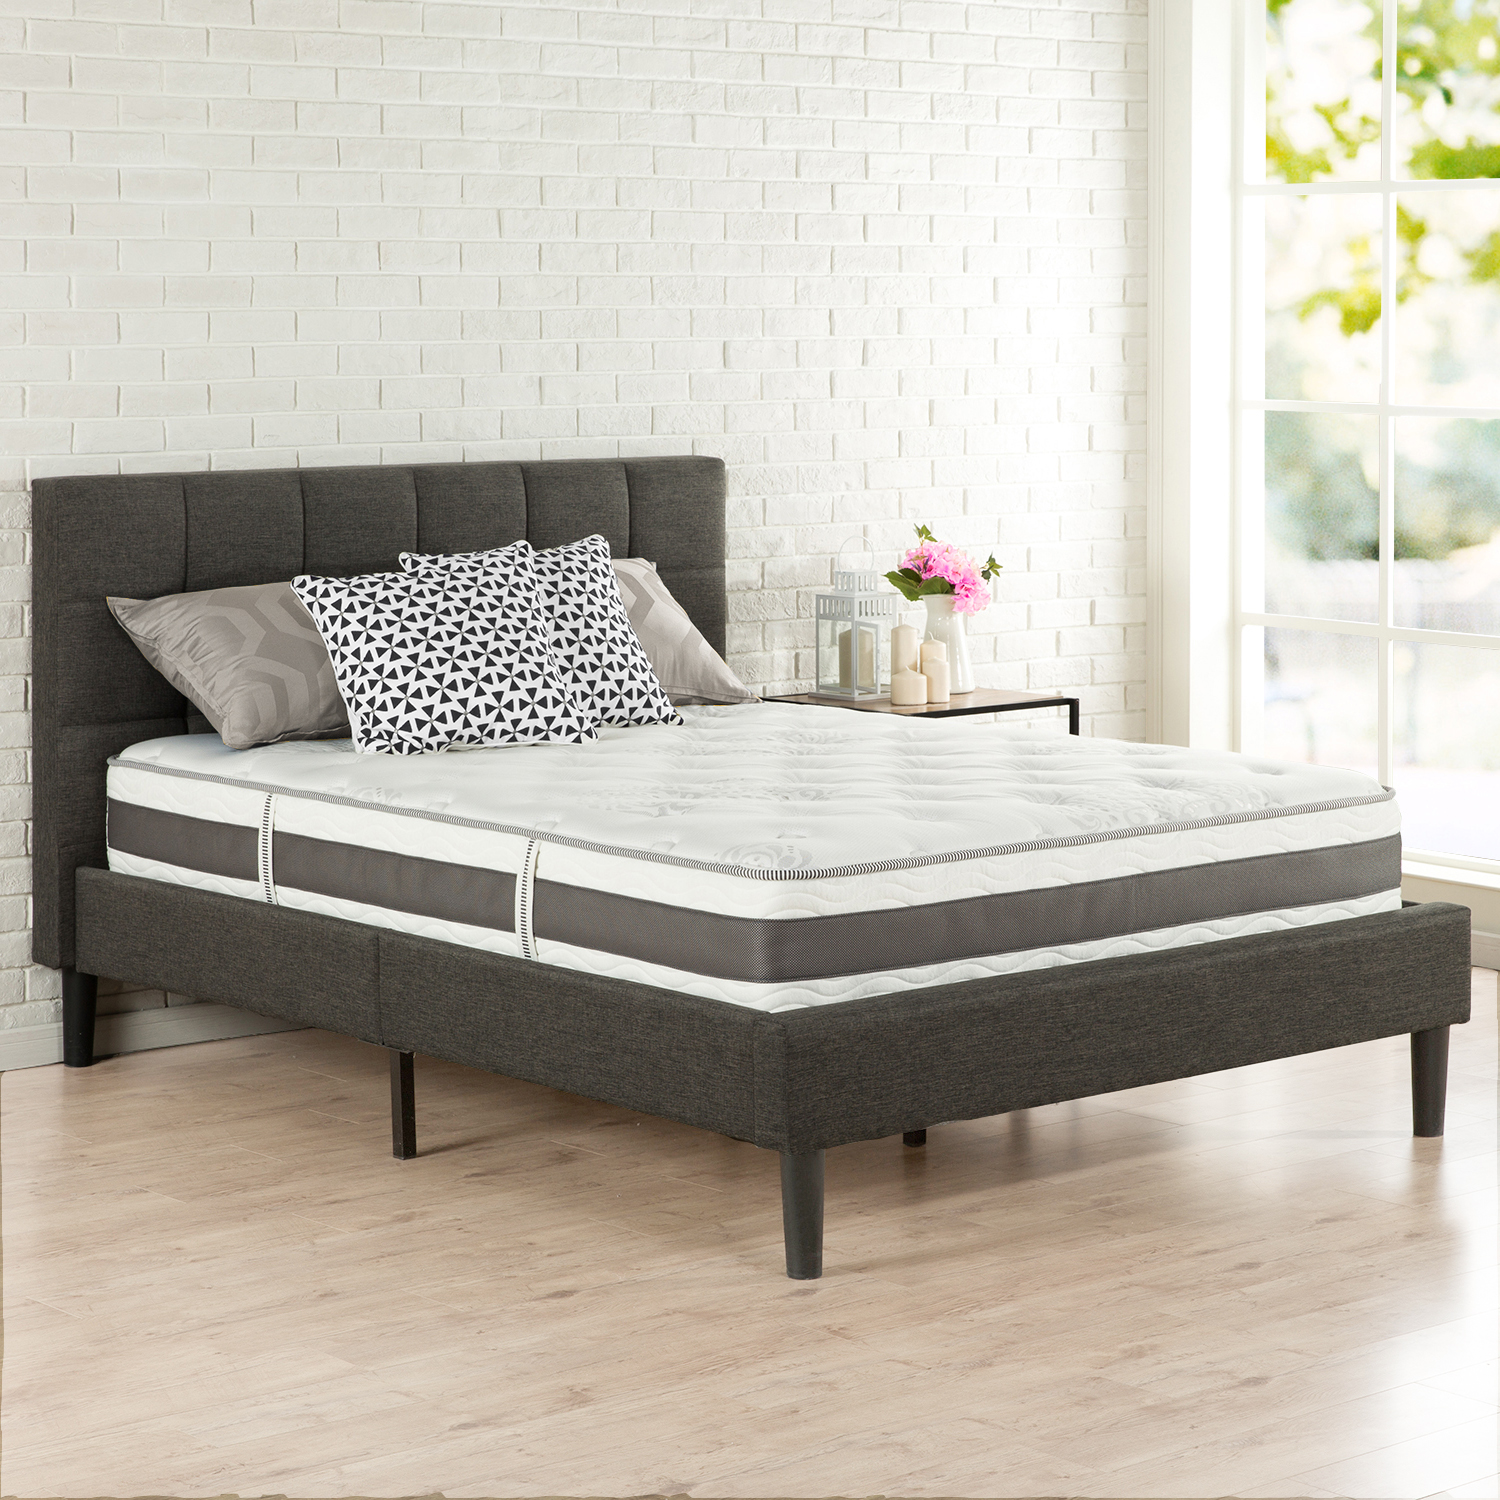 Spa Sensations by Zinus 10 Inch Memory Foam and Spring Hybrid Mattress